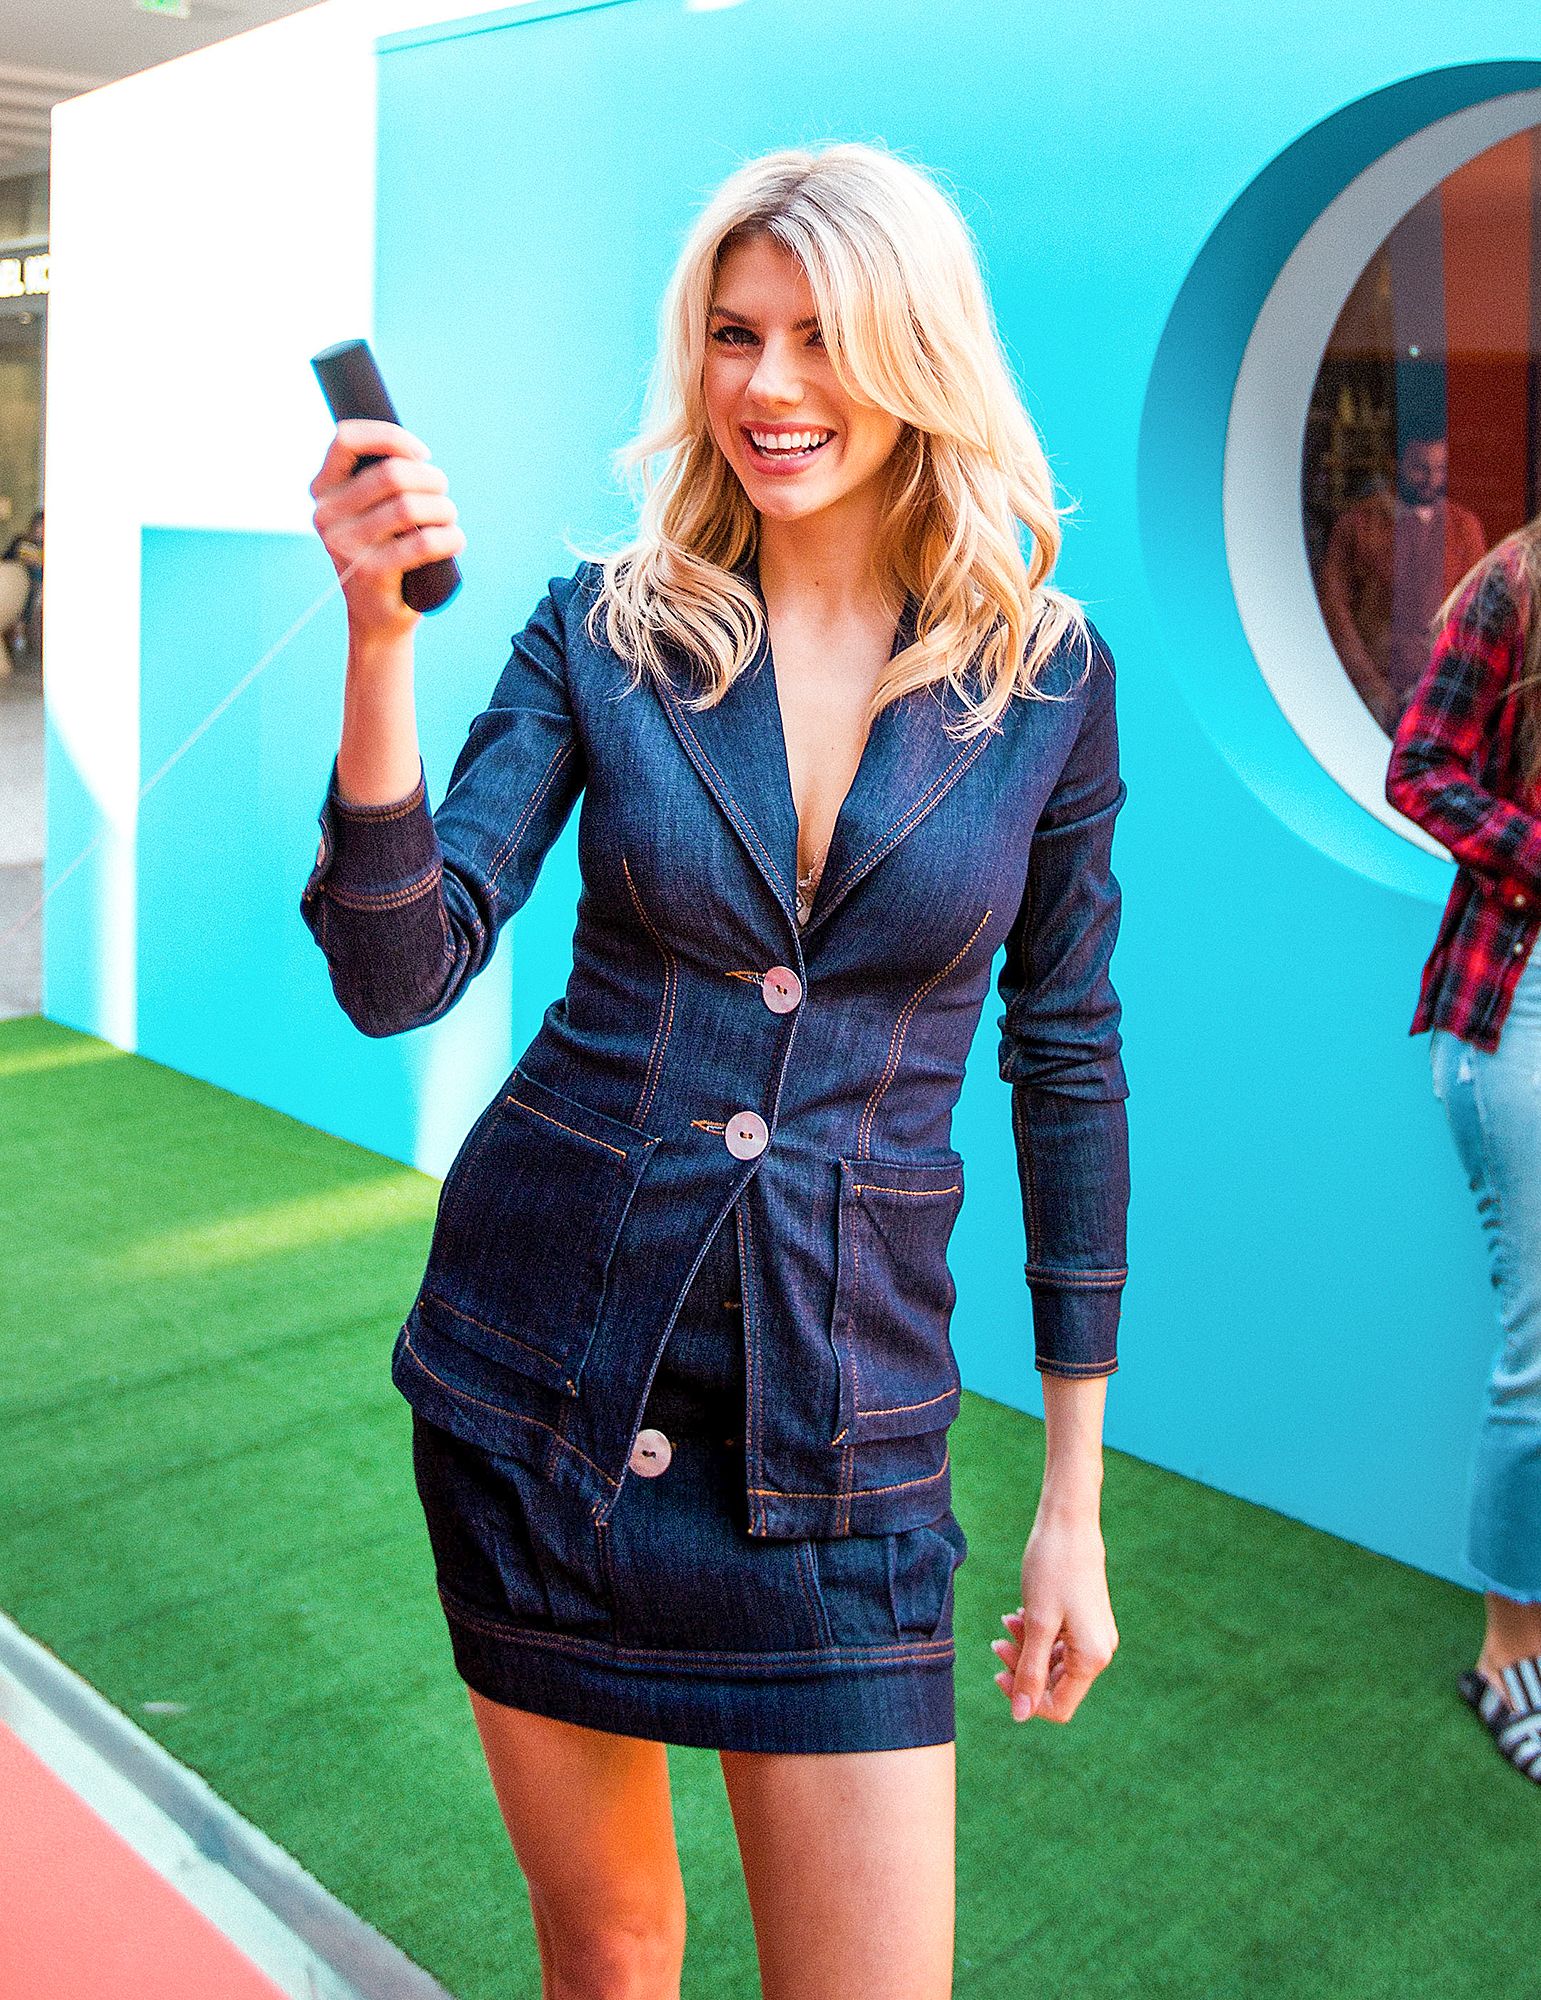 **EXCLUSIVE**  Photo Credit: NVE/ MOVI Inc.   Date: November 20th 2018 FOR GLOBAL SALES CALL (U.S) 310 739 4693 OR EMAIL contact@movi-inc.comCord Cutters Only! Actress Charlotte McKinney attends Amazon Fire TV's Black Friday Pop-Up at The Westfield Ce